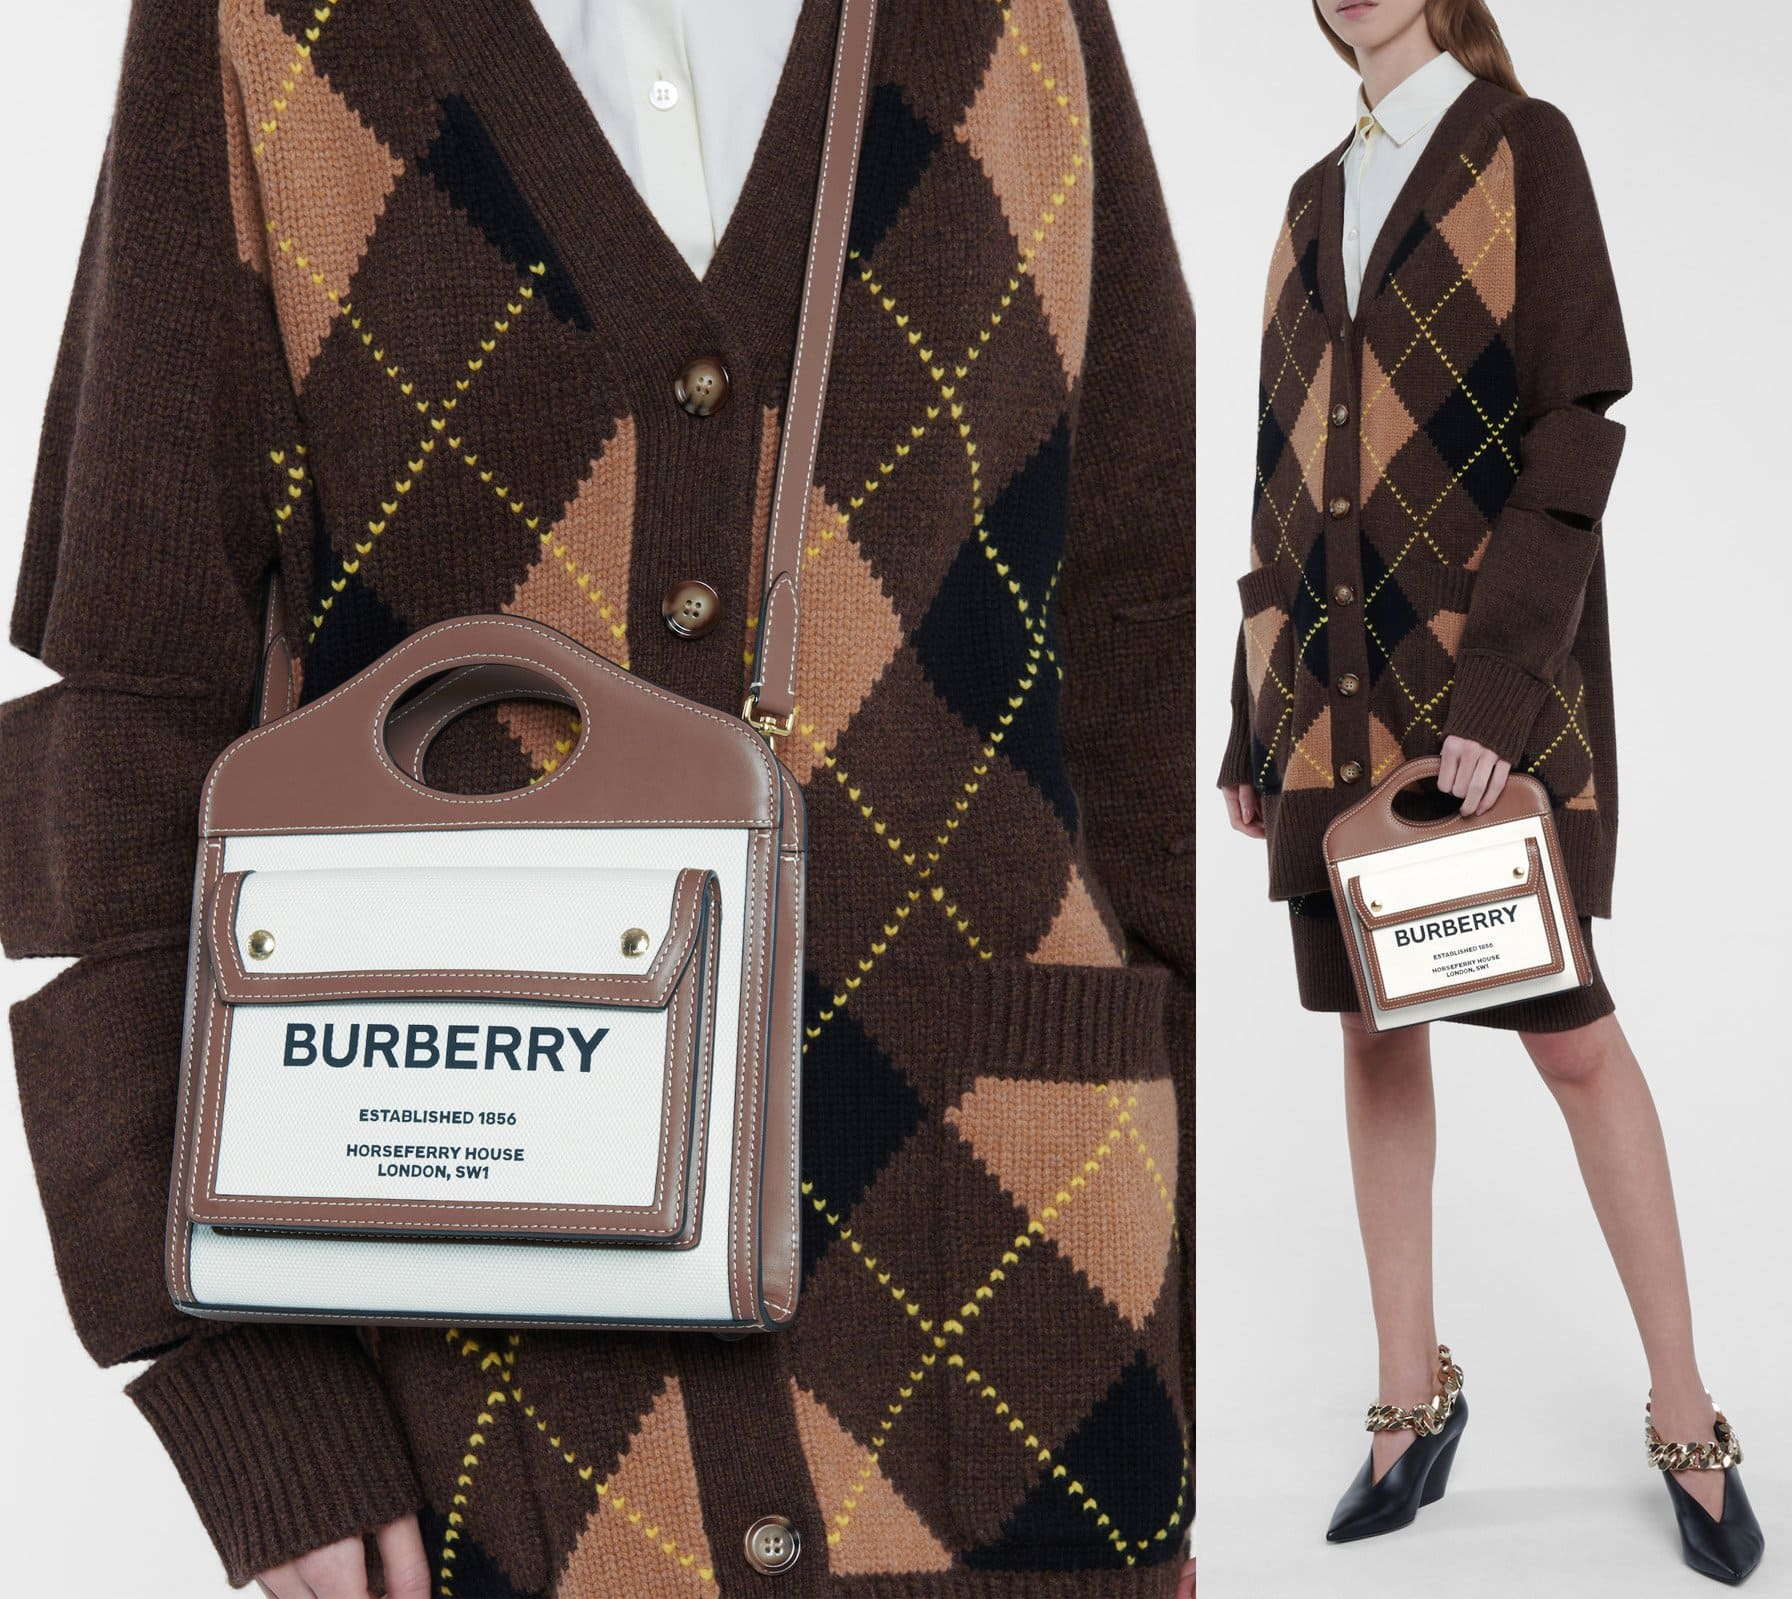 A sleek, archival-inspired design refreshed with Burberry's bold Horseferry logo on the front pocket